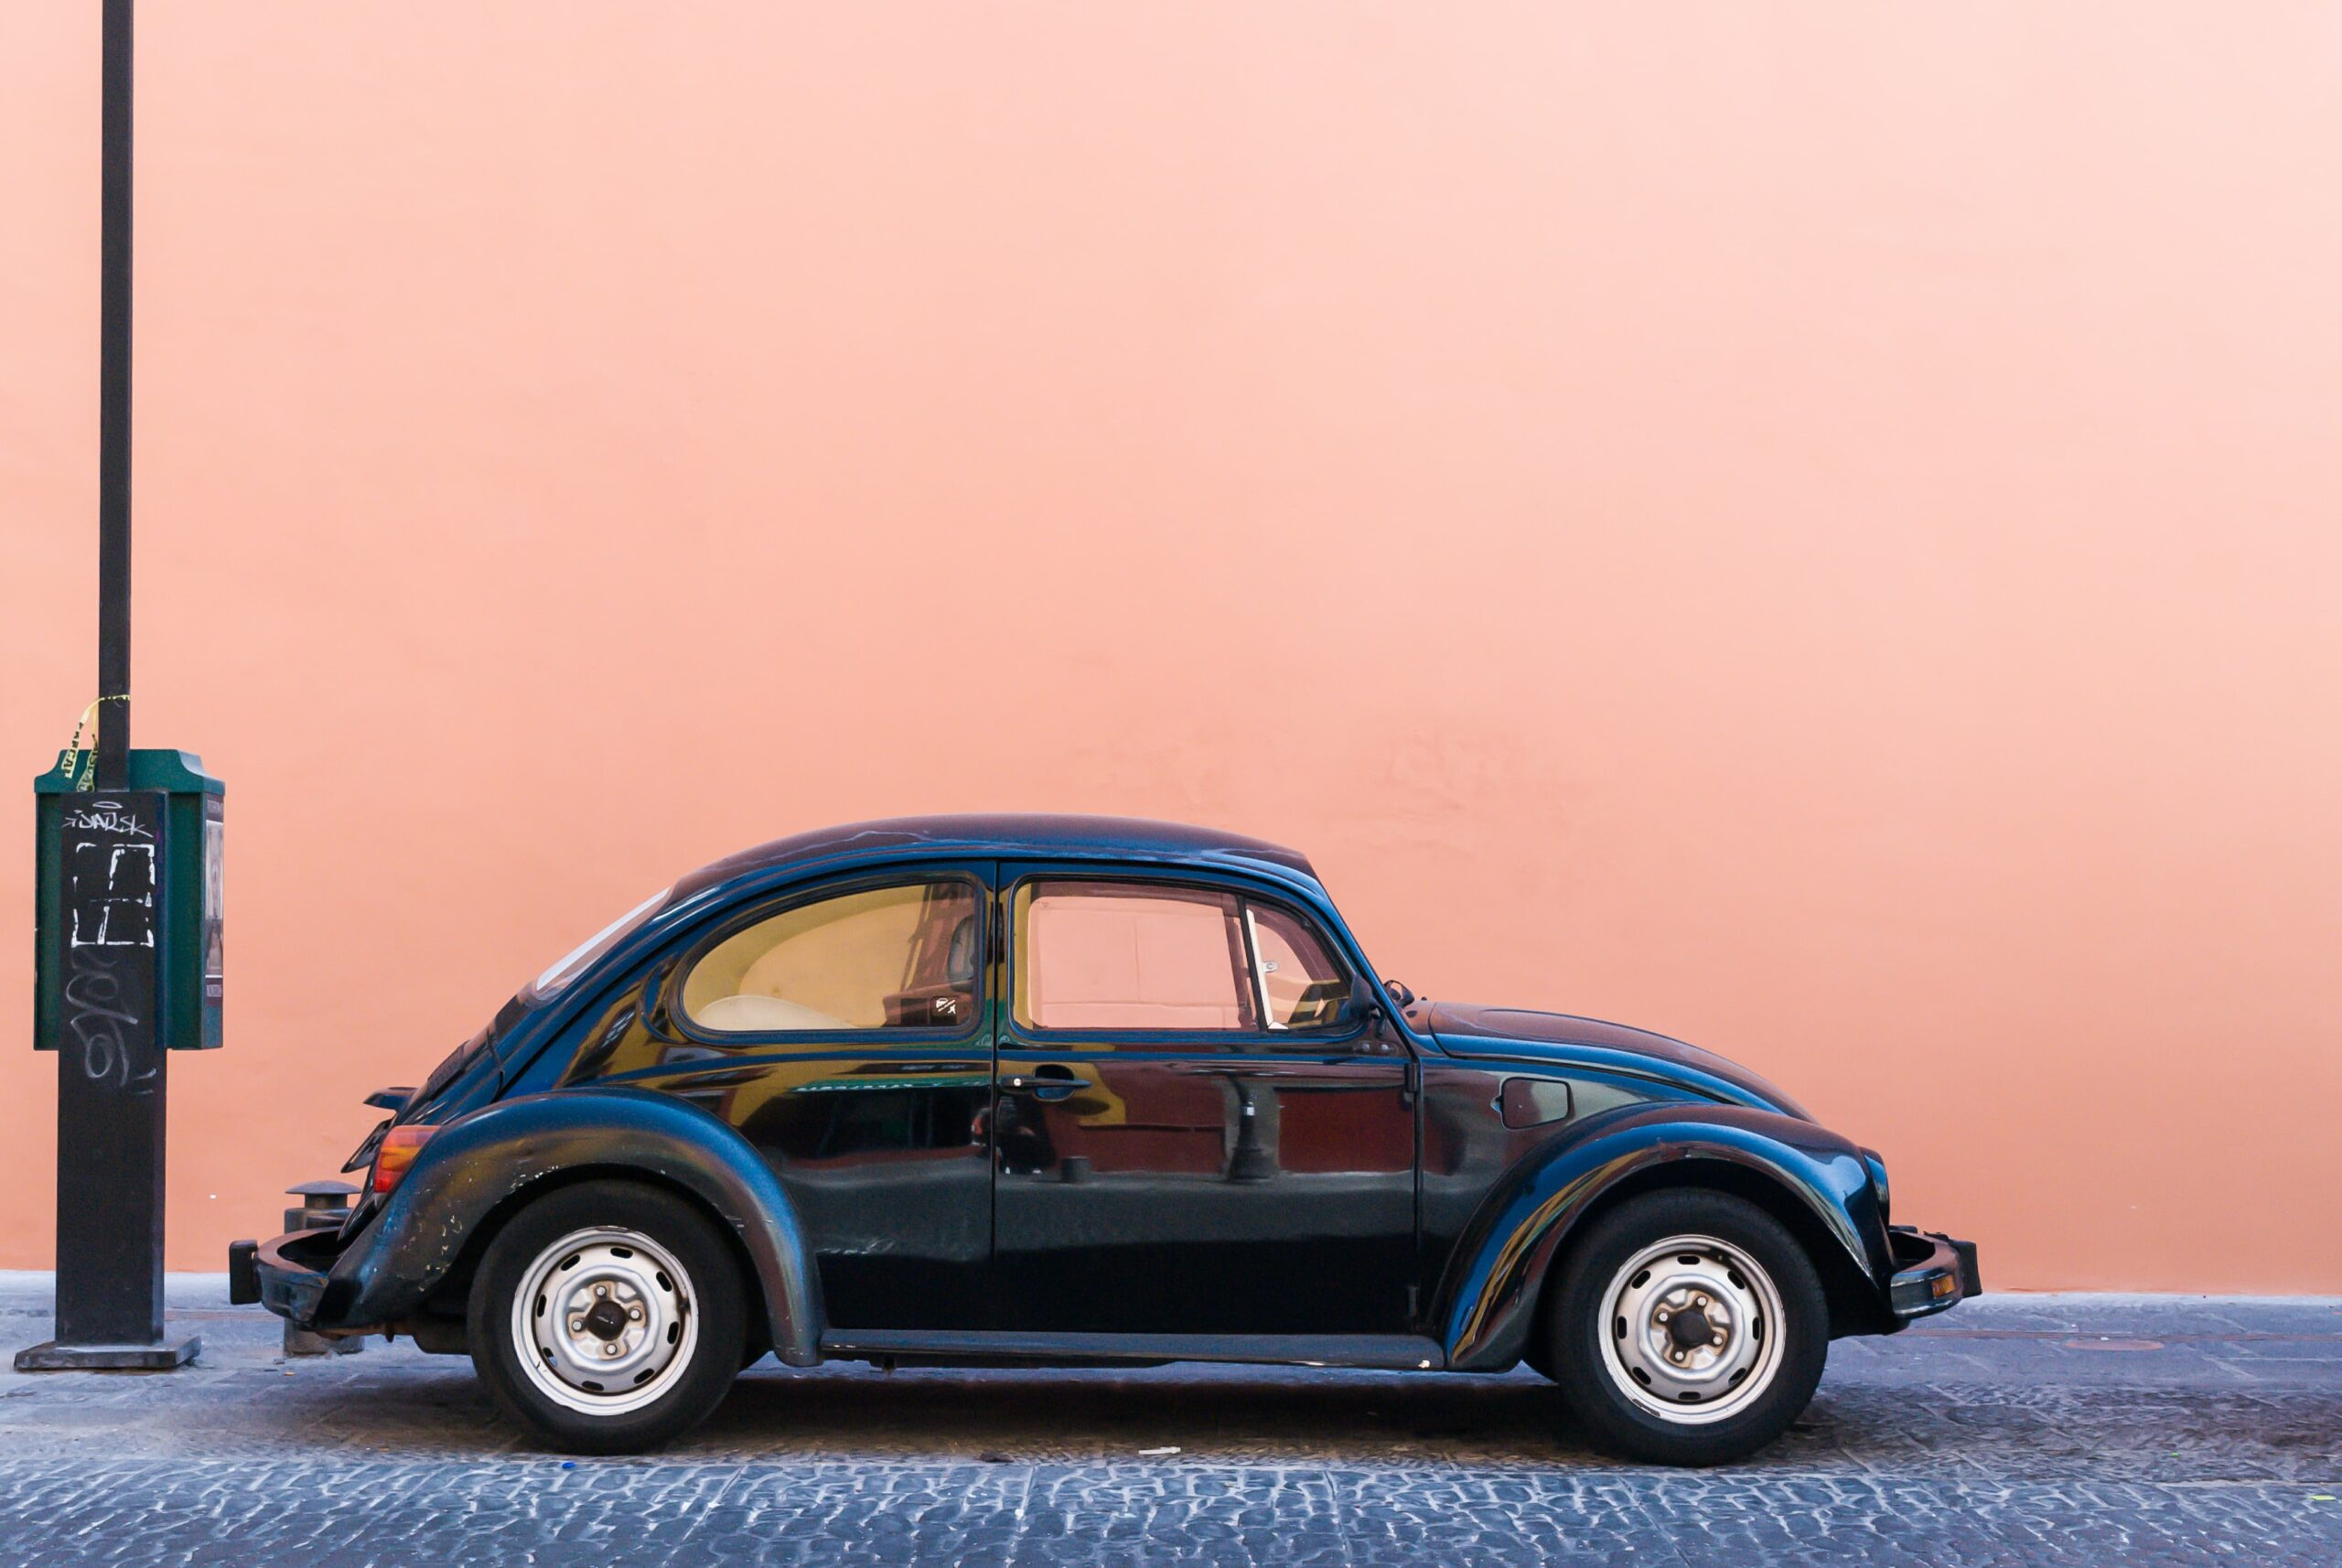 Volkswagon beatle against a pink wall background